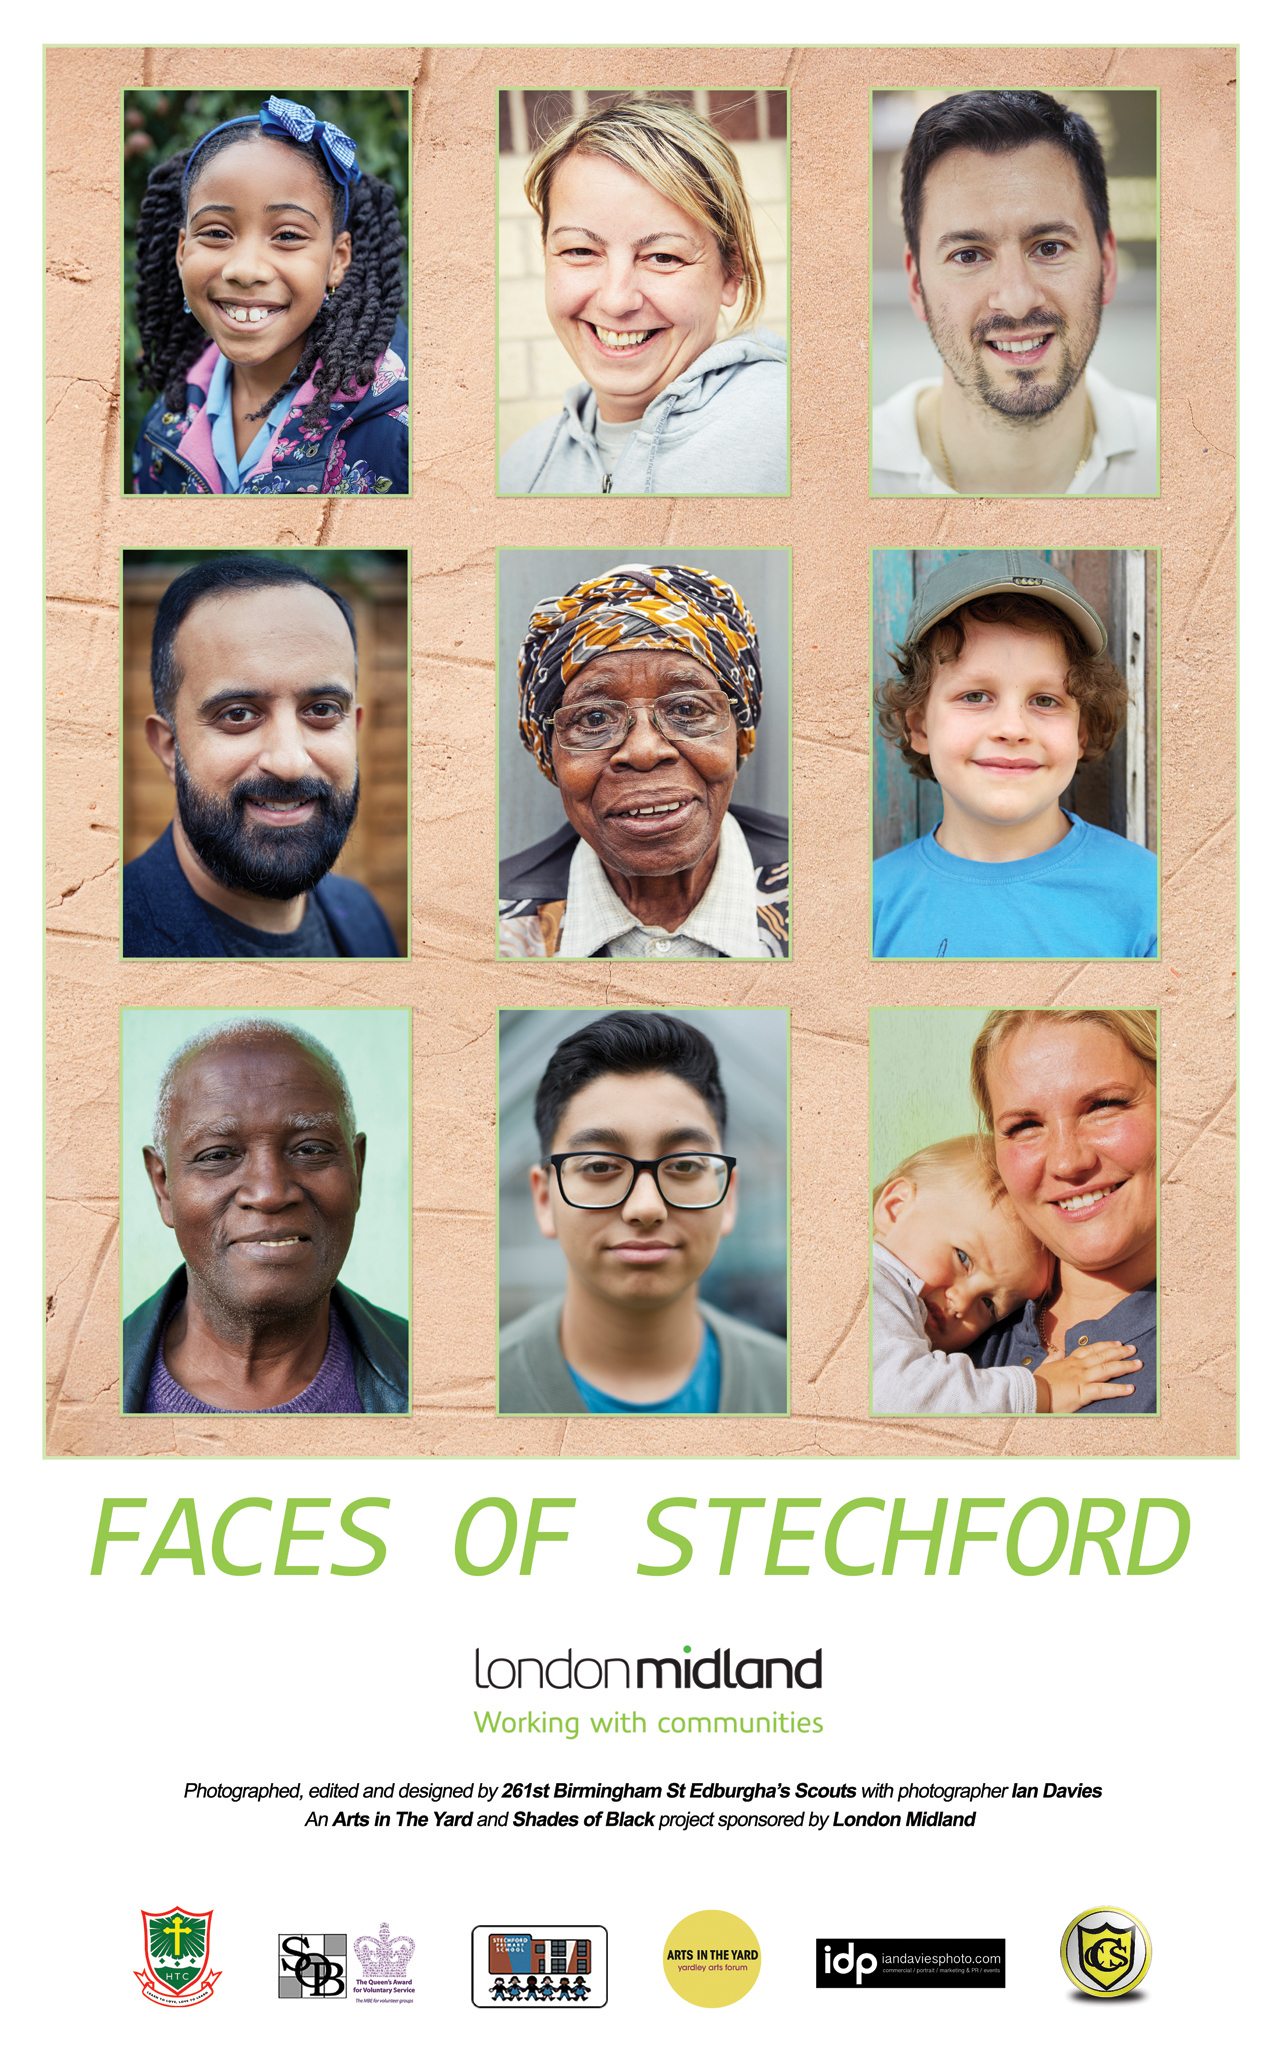 Faces of Stechford, London Midland, idp, ian davies, iandaviesphoto, photographer birmingham, commercial photographer birmingham, portrait photographer birmingham, event photographer birmingham, live event photographer, corporate photographer birmingham, corporate headshots Birmingham